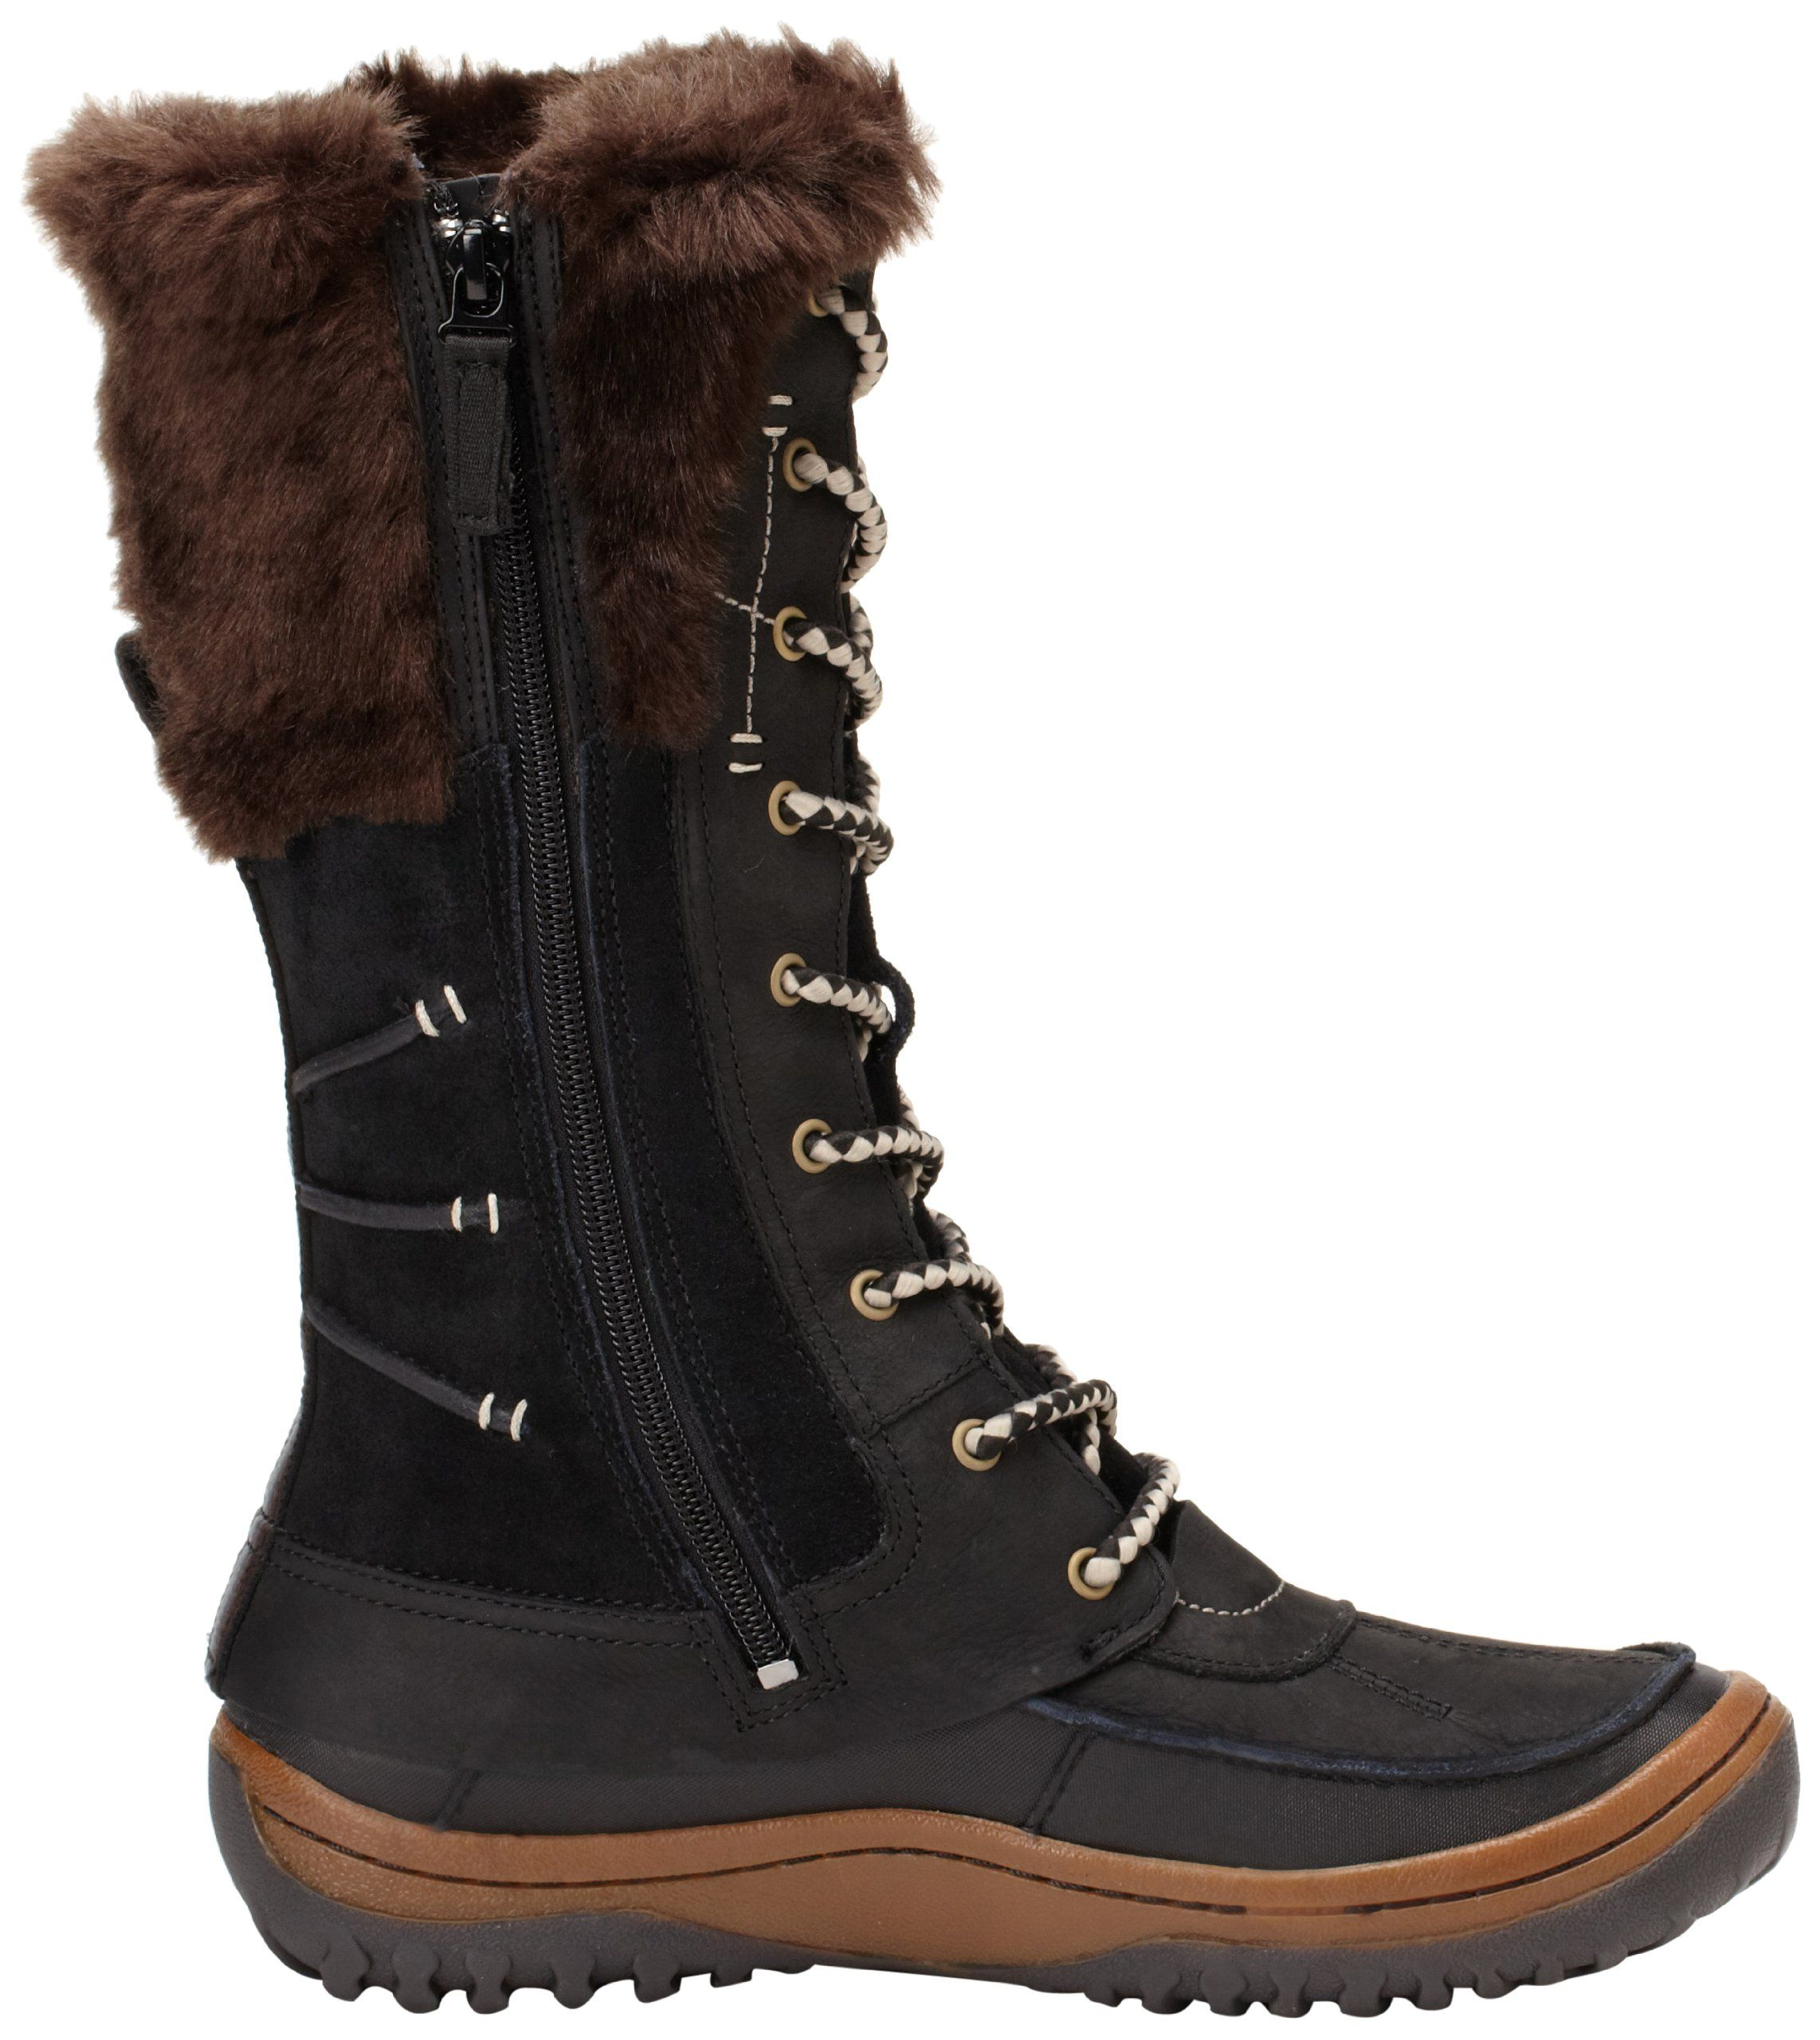 81859714a92373 Amazon.com  Merrell Women s Decora Prelude Waterproof Winter Boot  Shoes